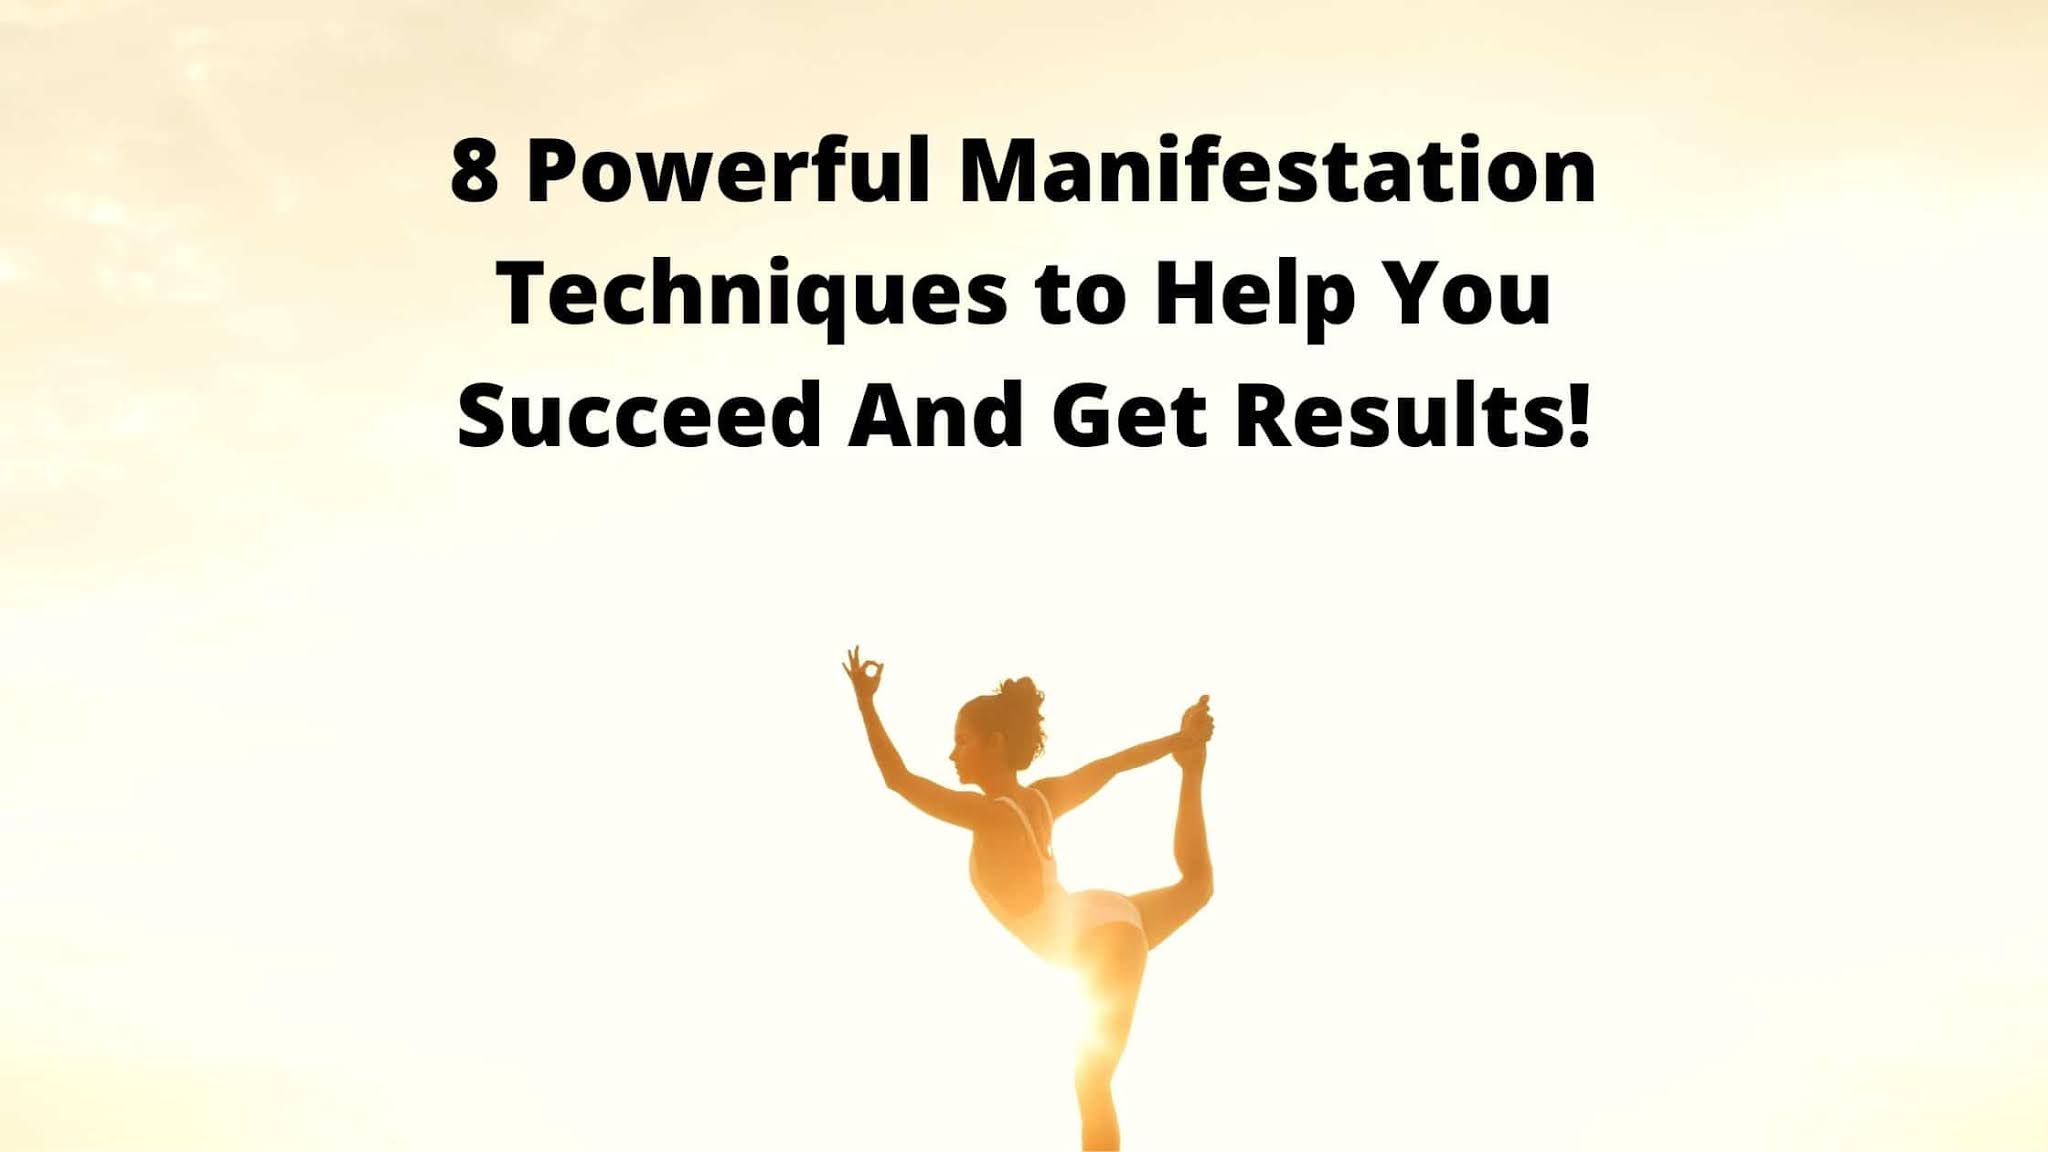 8 Powerful Manifestation Techniques to Help You Succeed And Get Results!